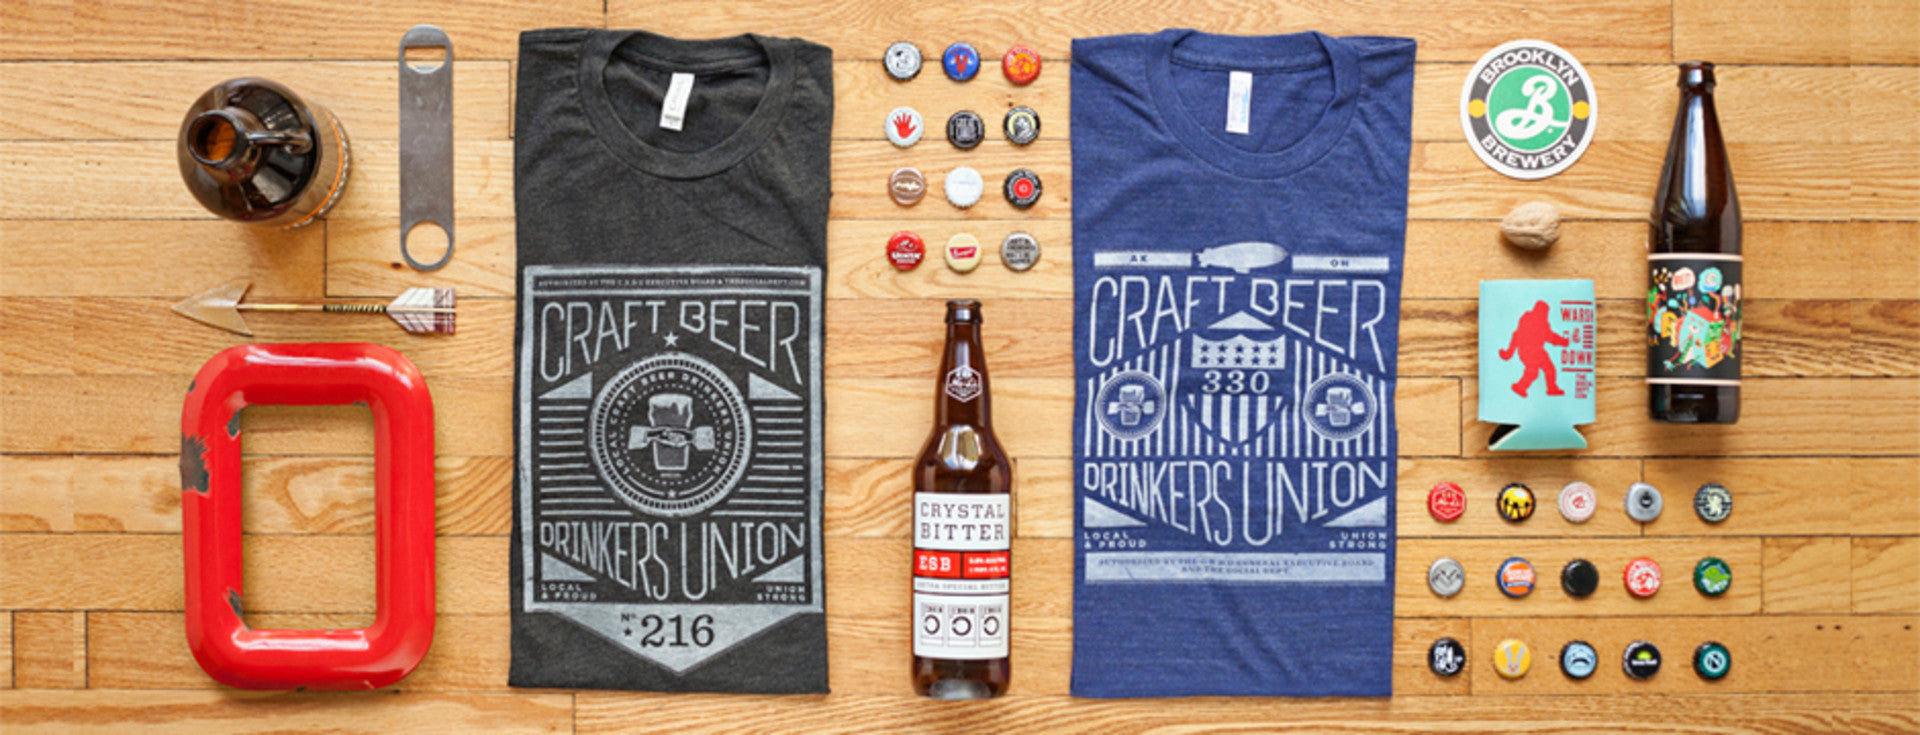 CRAFT BEER DRINKERS